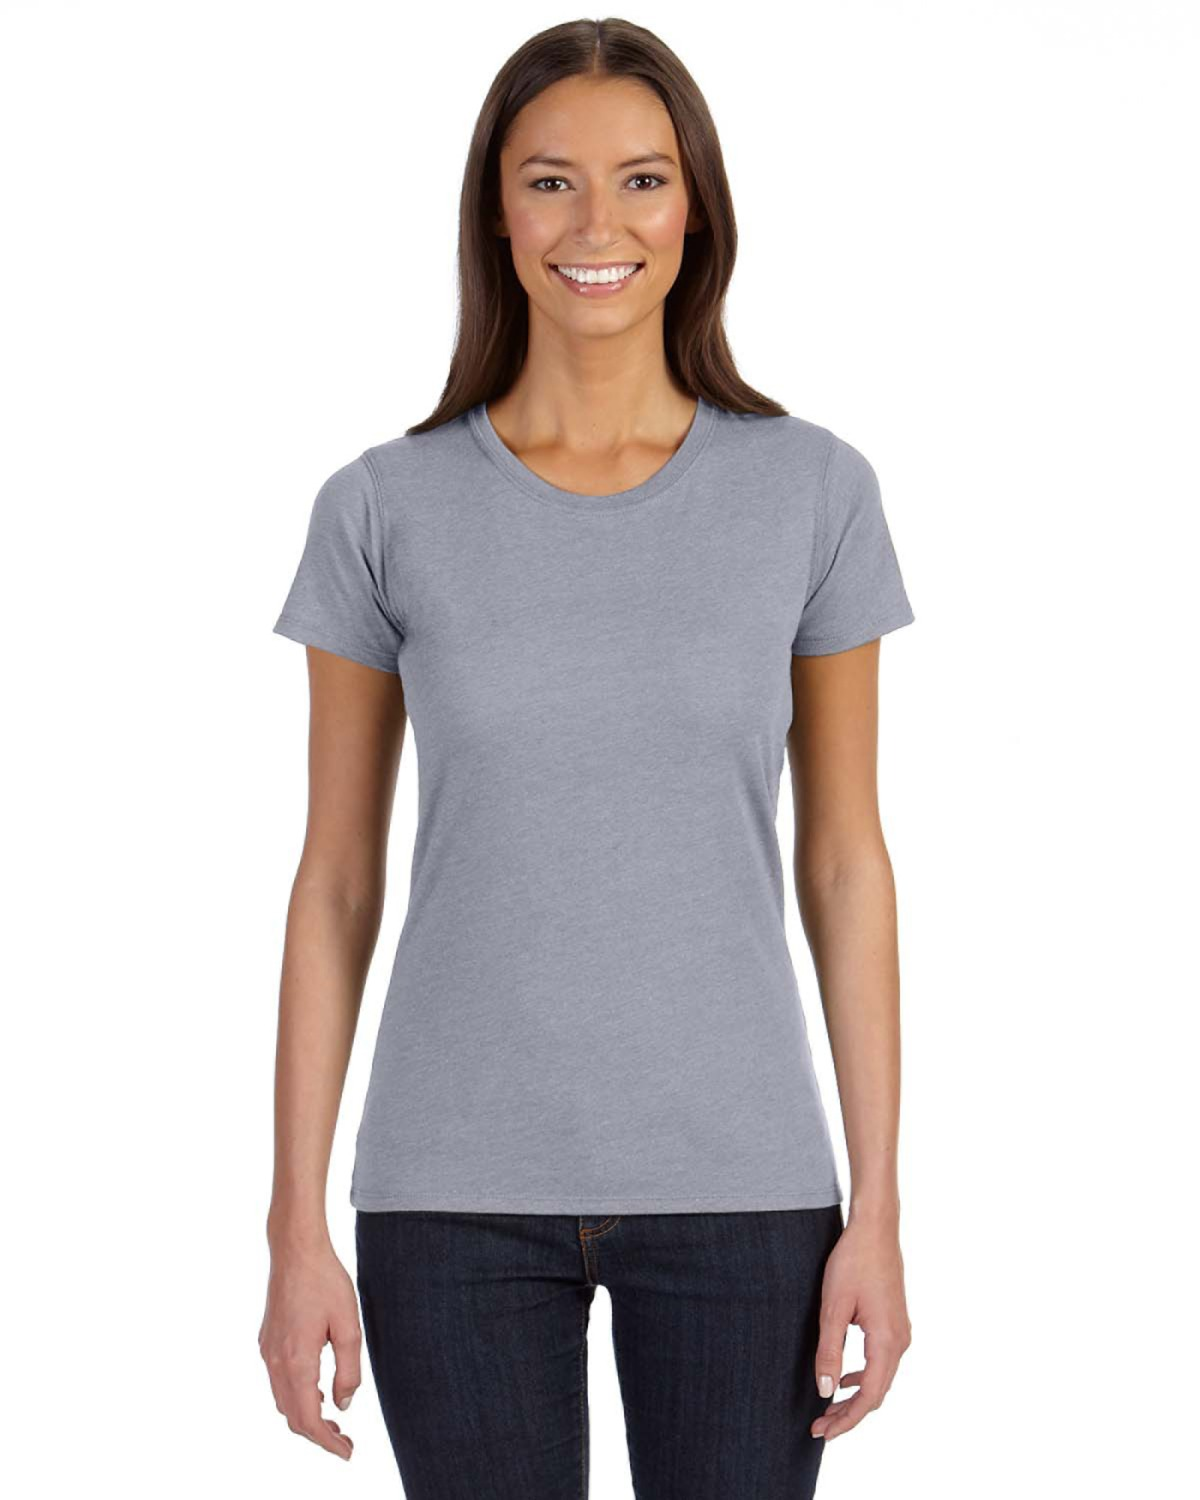 Econscious EC3800 - 4.25 oz. Blended Eco T-Shirt